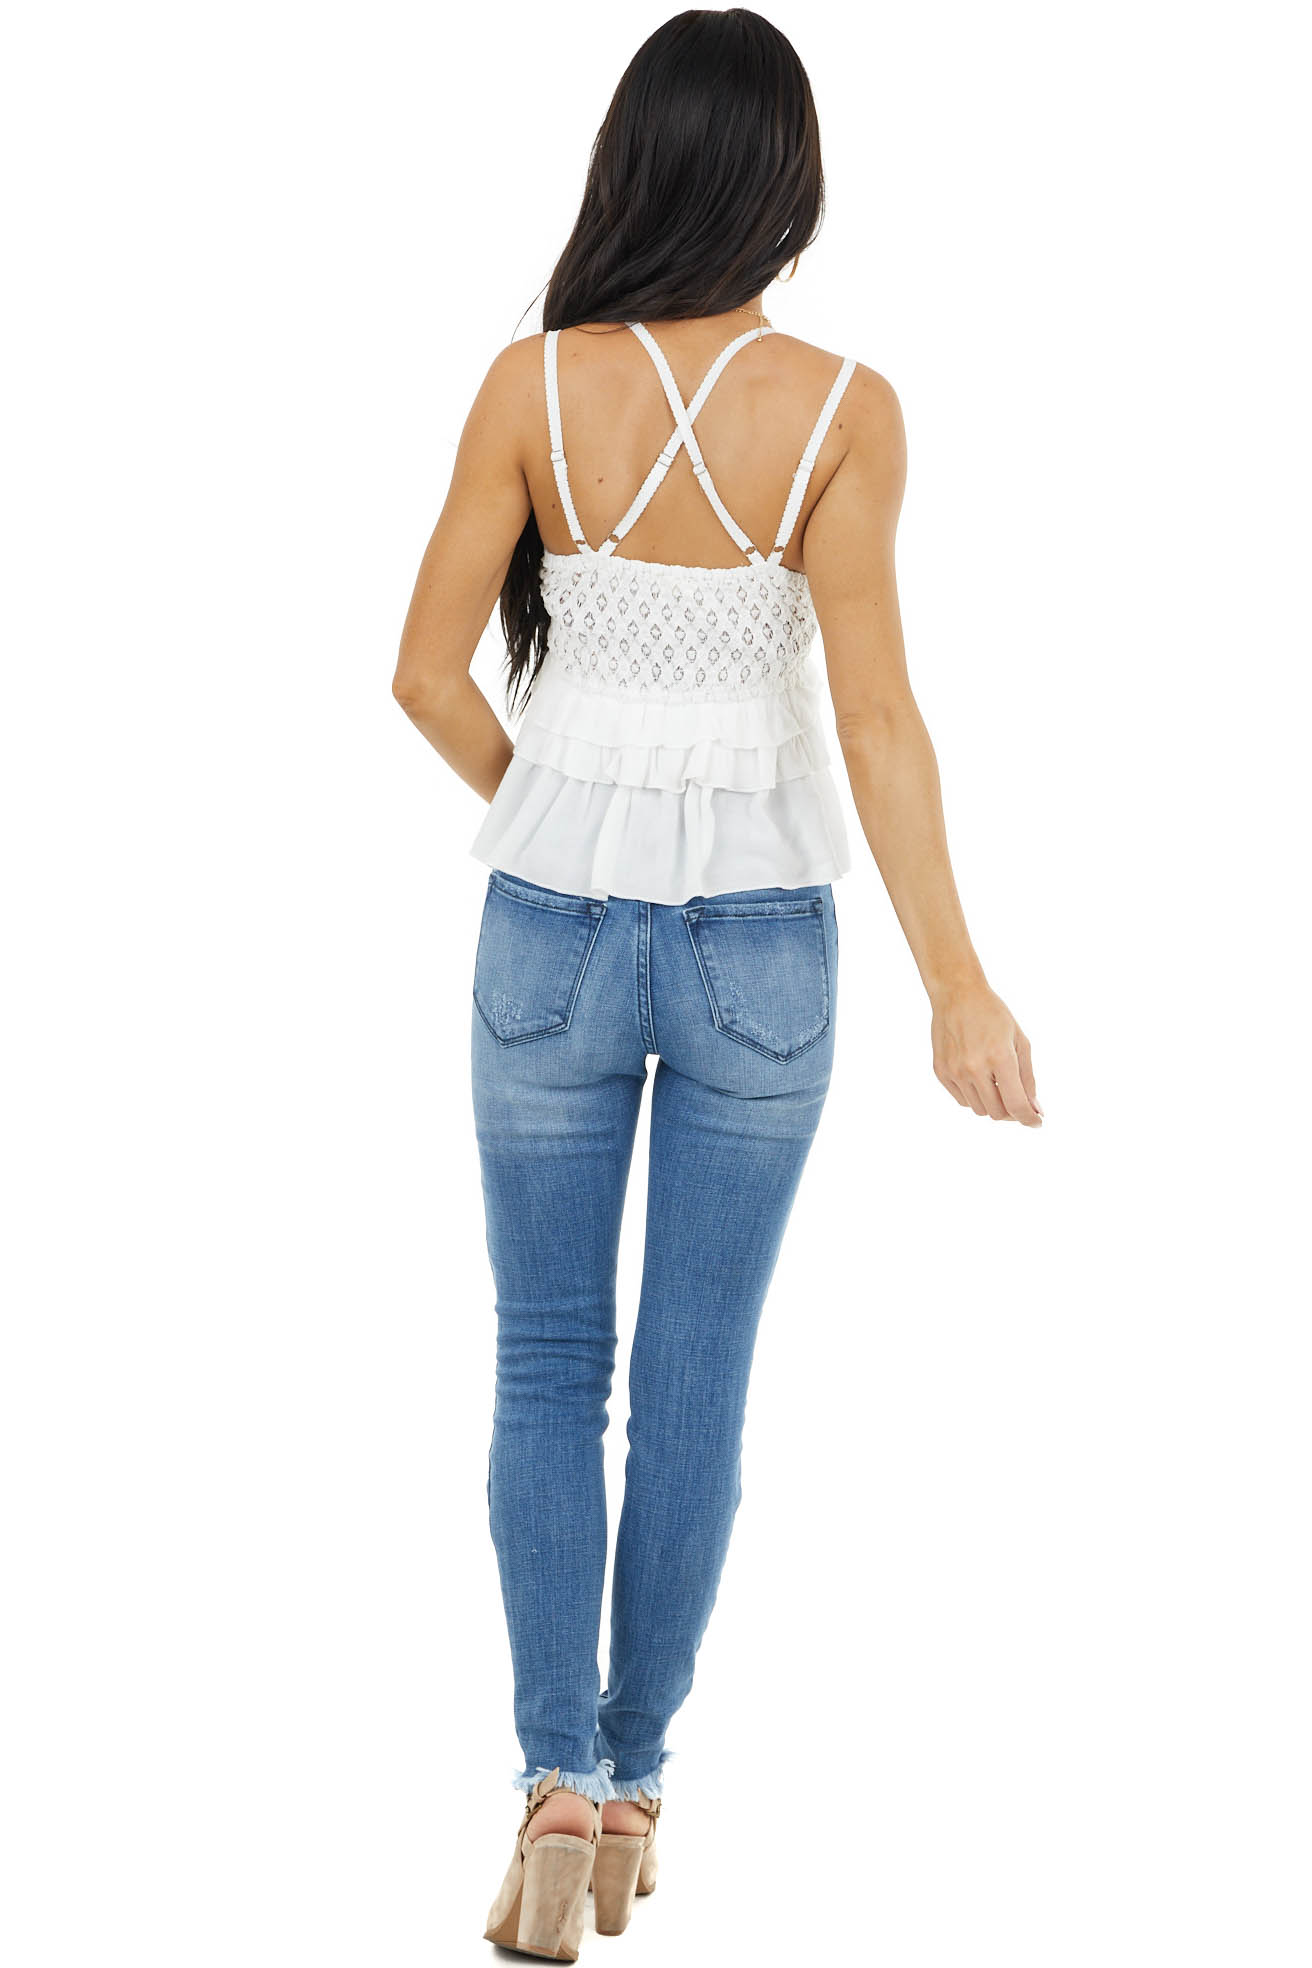 Ivory Crochet Lace Sleeveless Top with Ruffled Bottom